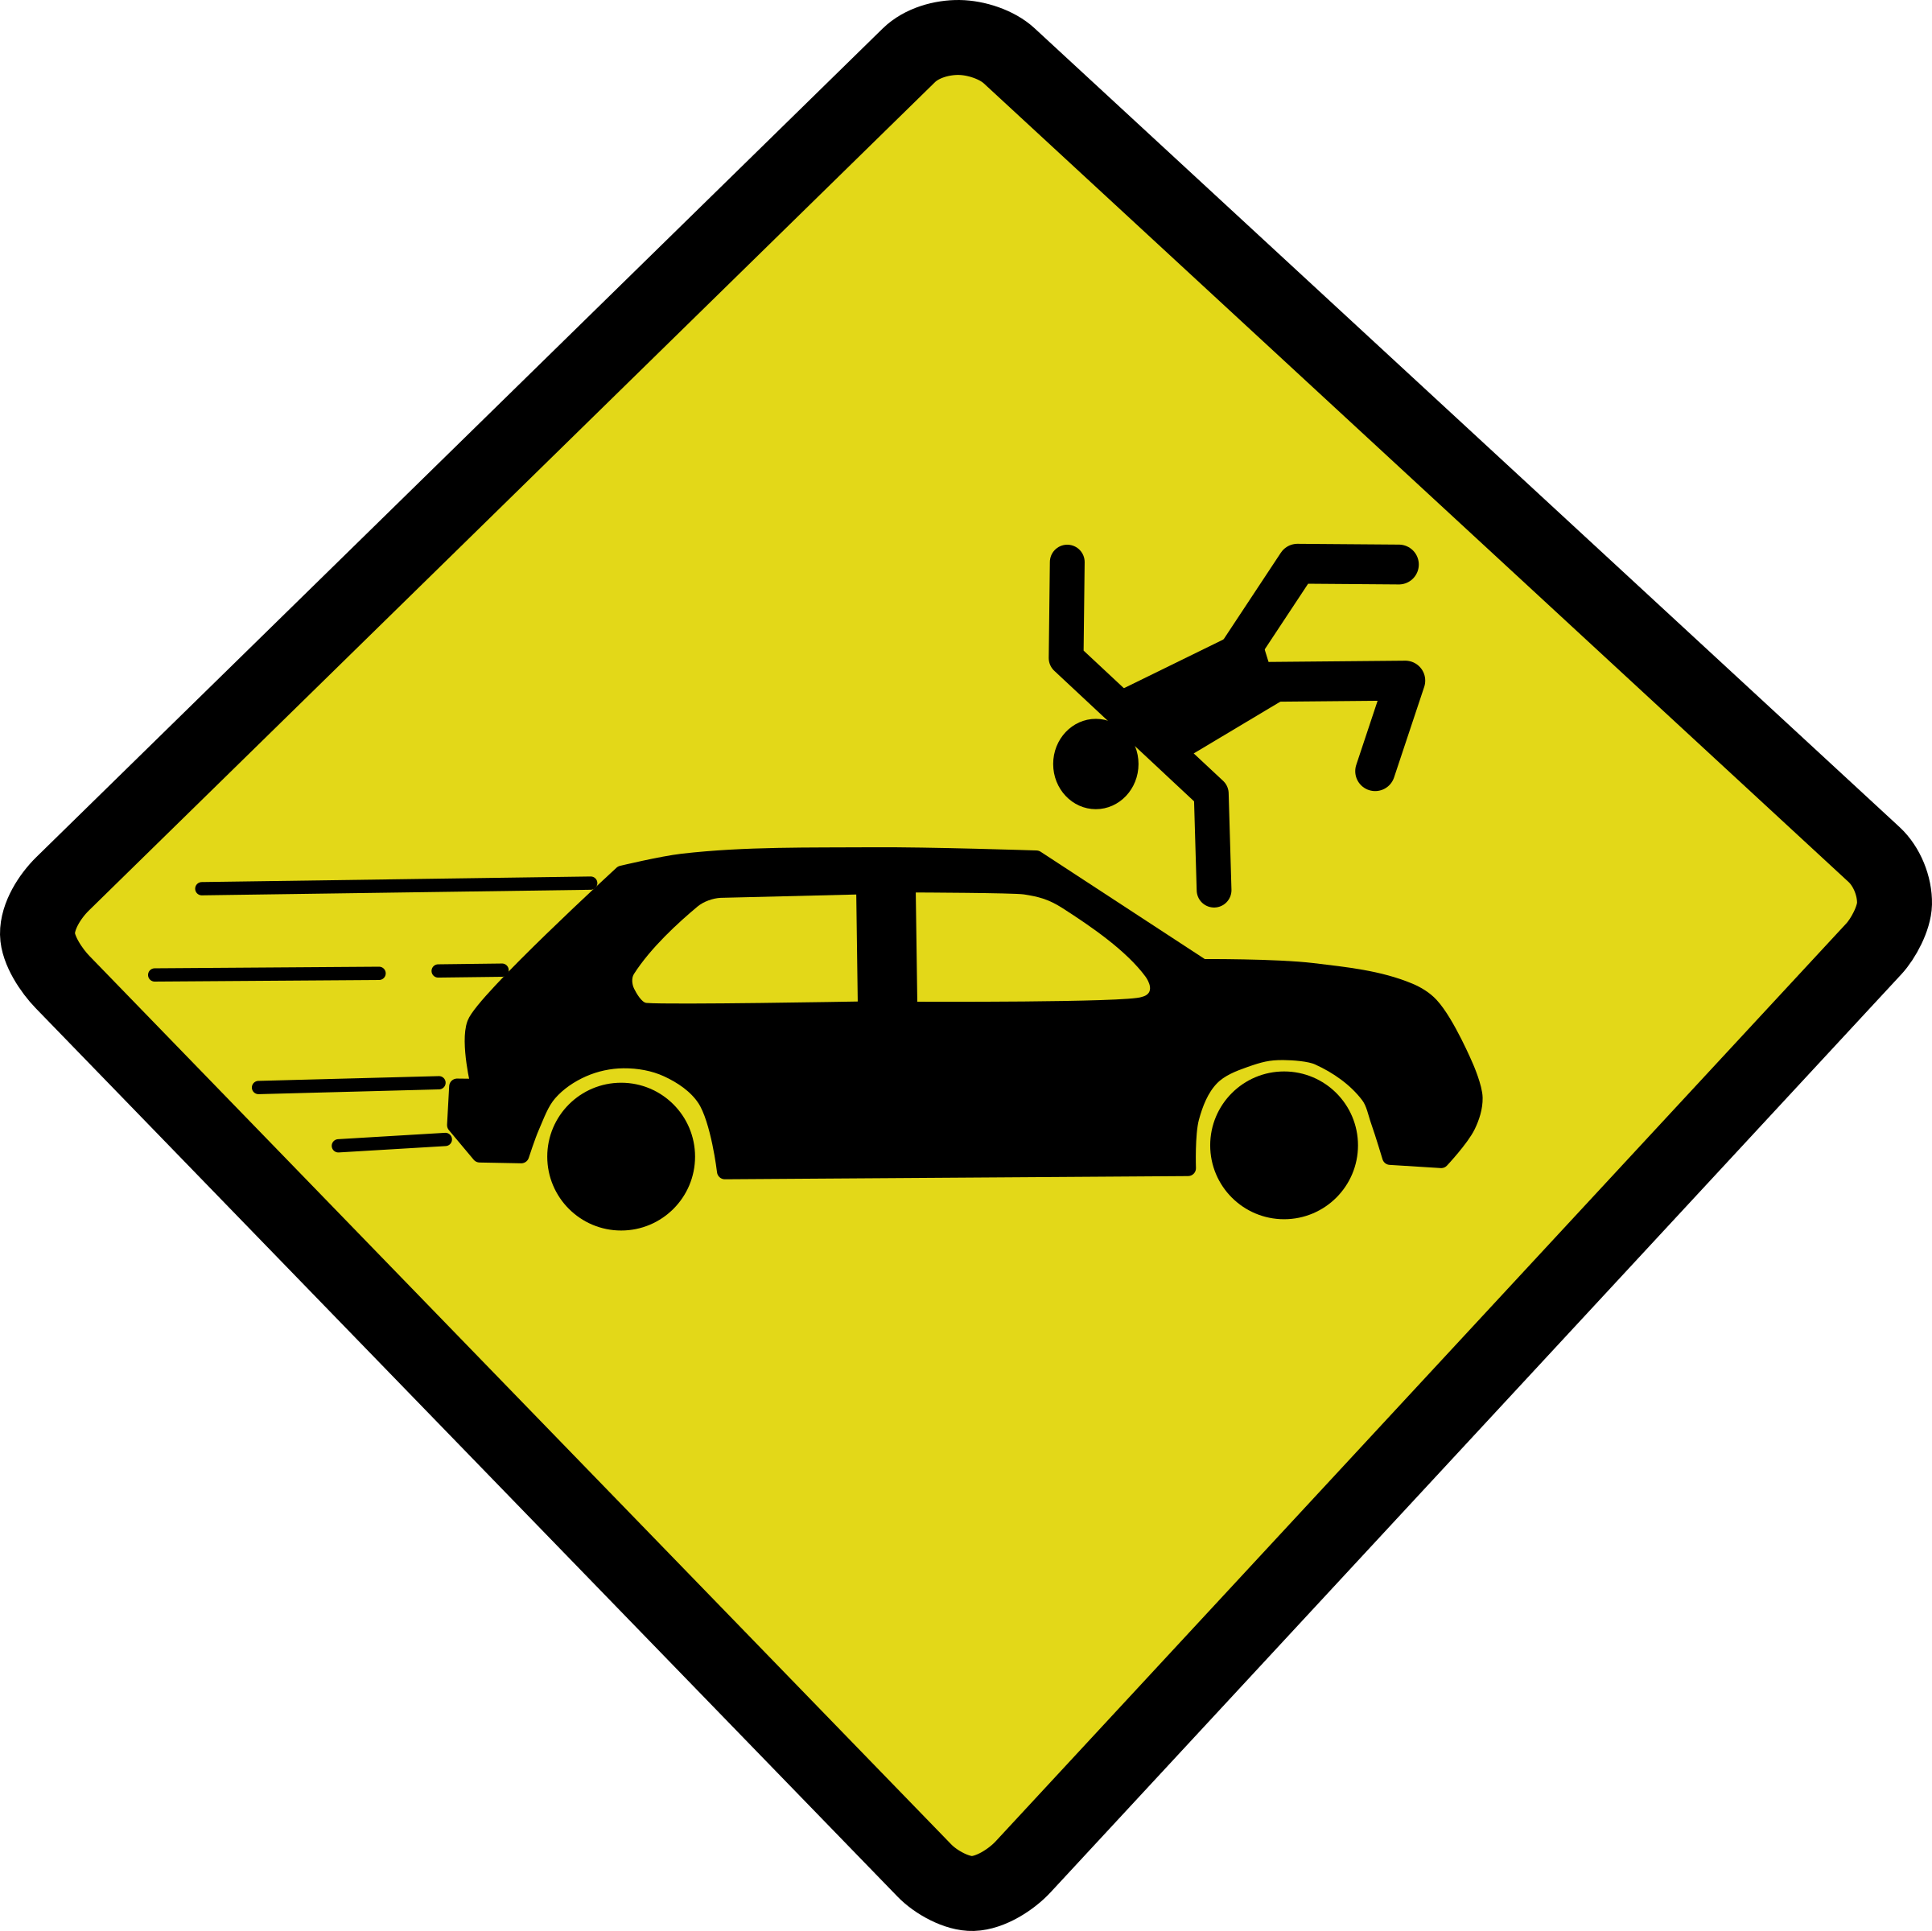 Car sign clipart png library stock Car Traffic collision Clip art - Car Accident Cliparts 2401*2400 ... png library stock